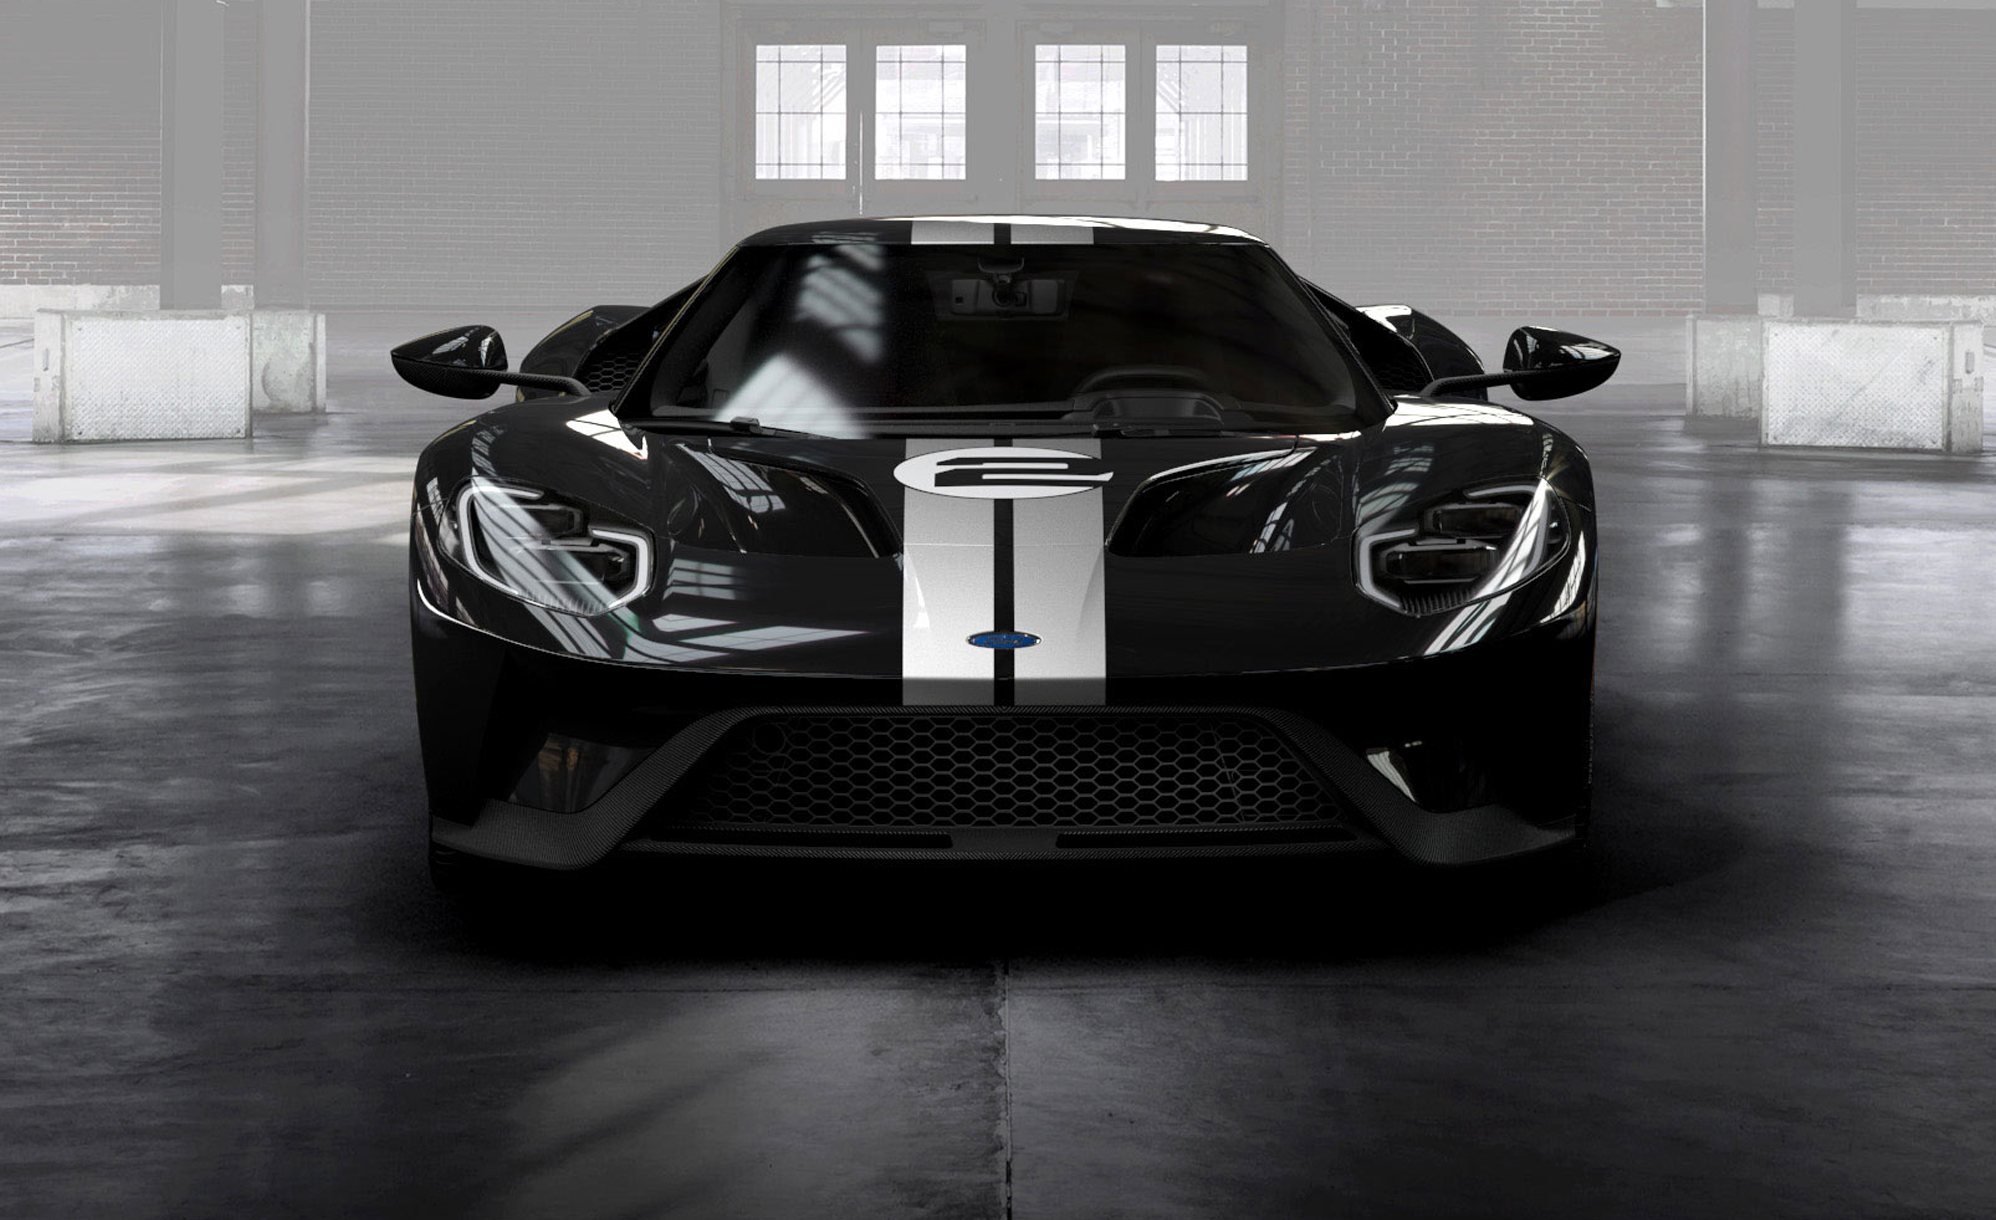 ford-GT-66-Heritage-Edition-9.jpg